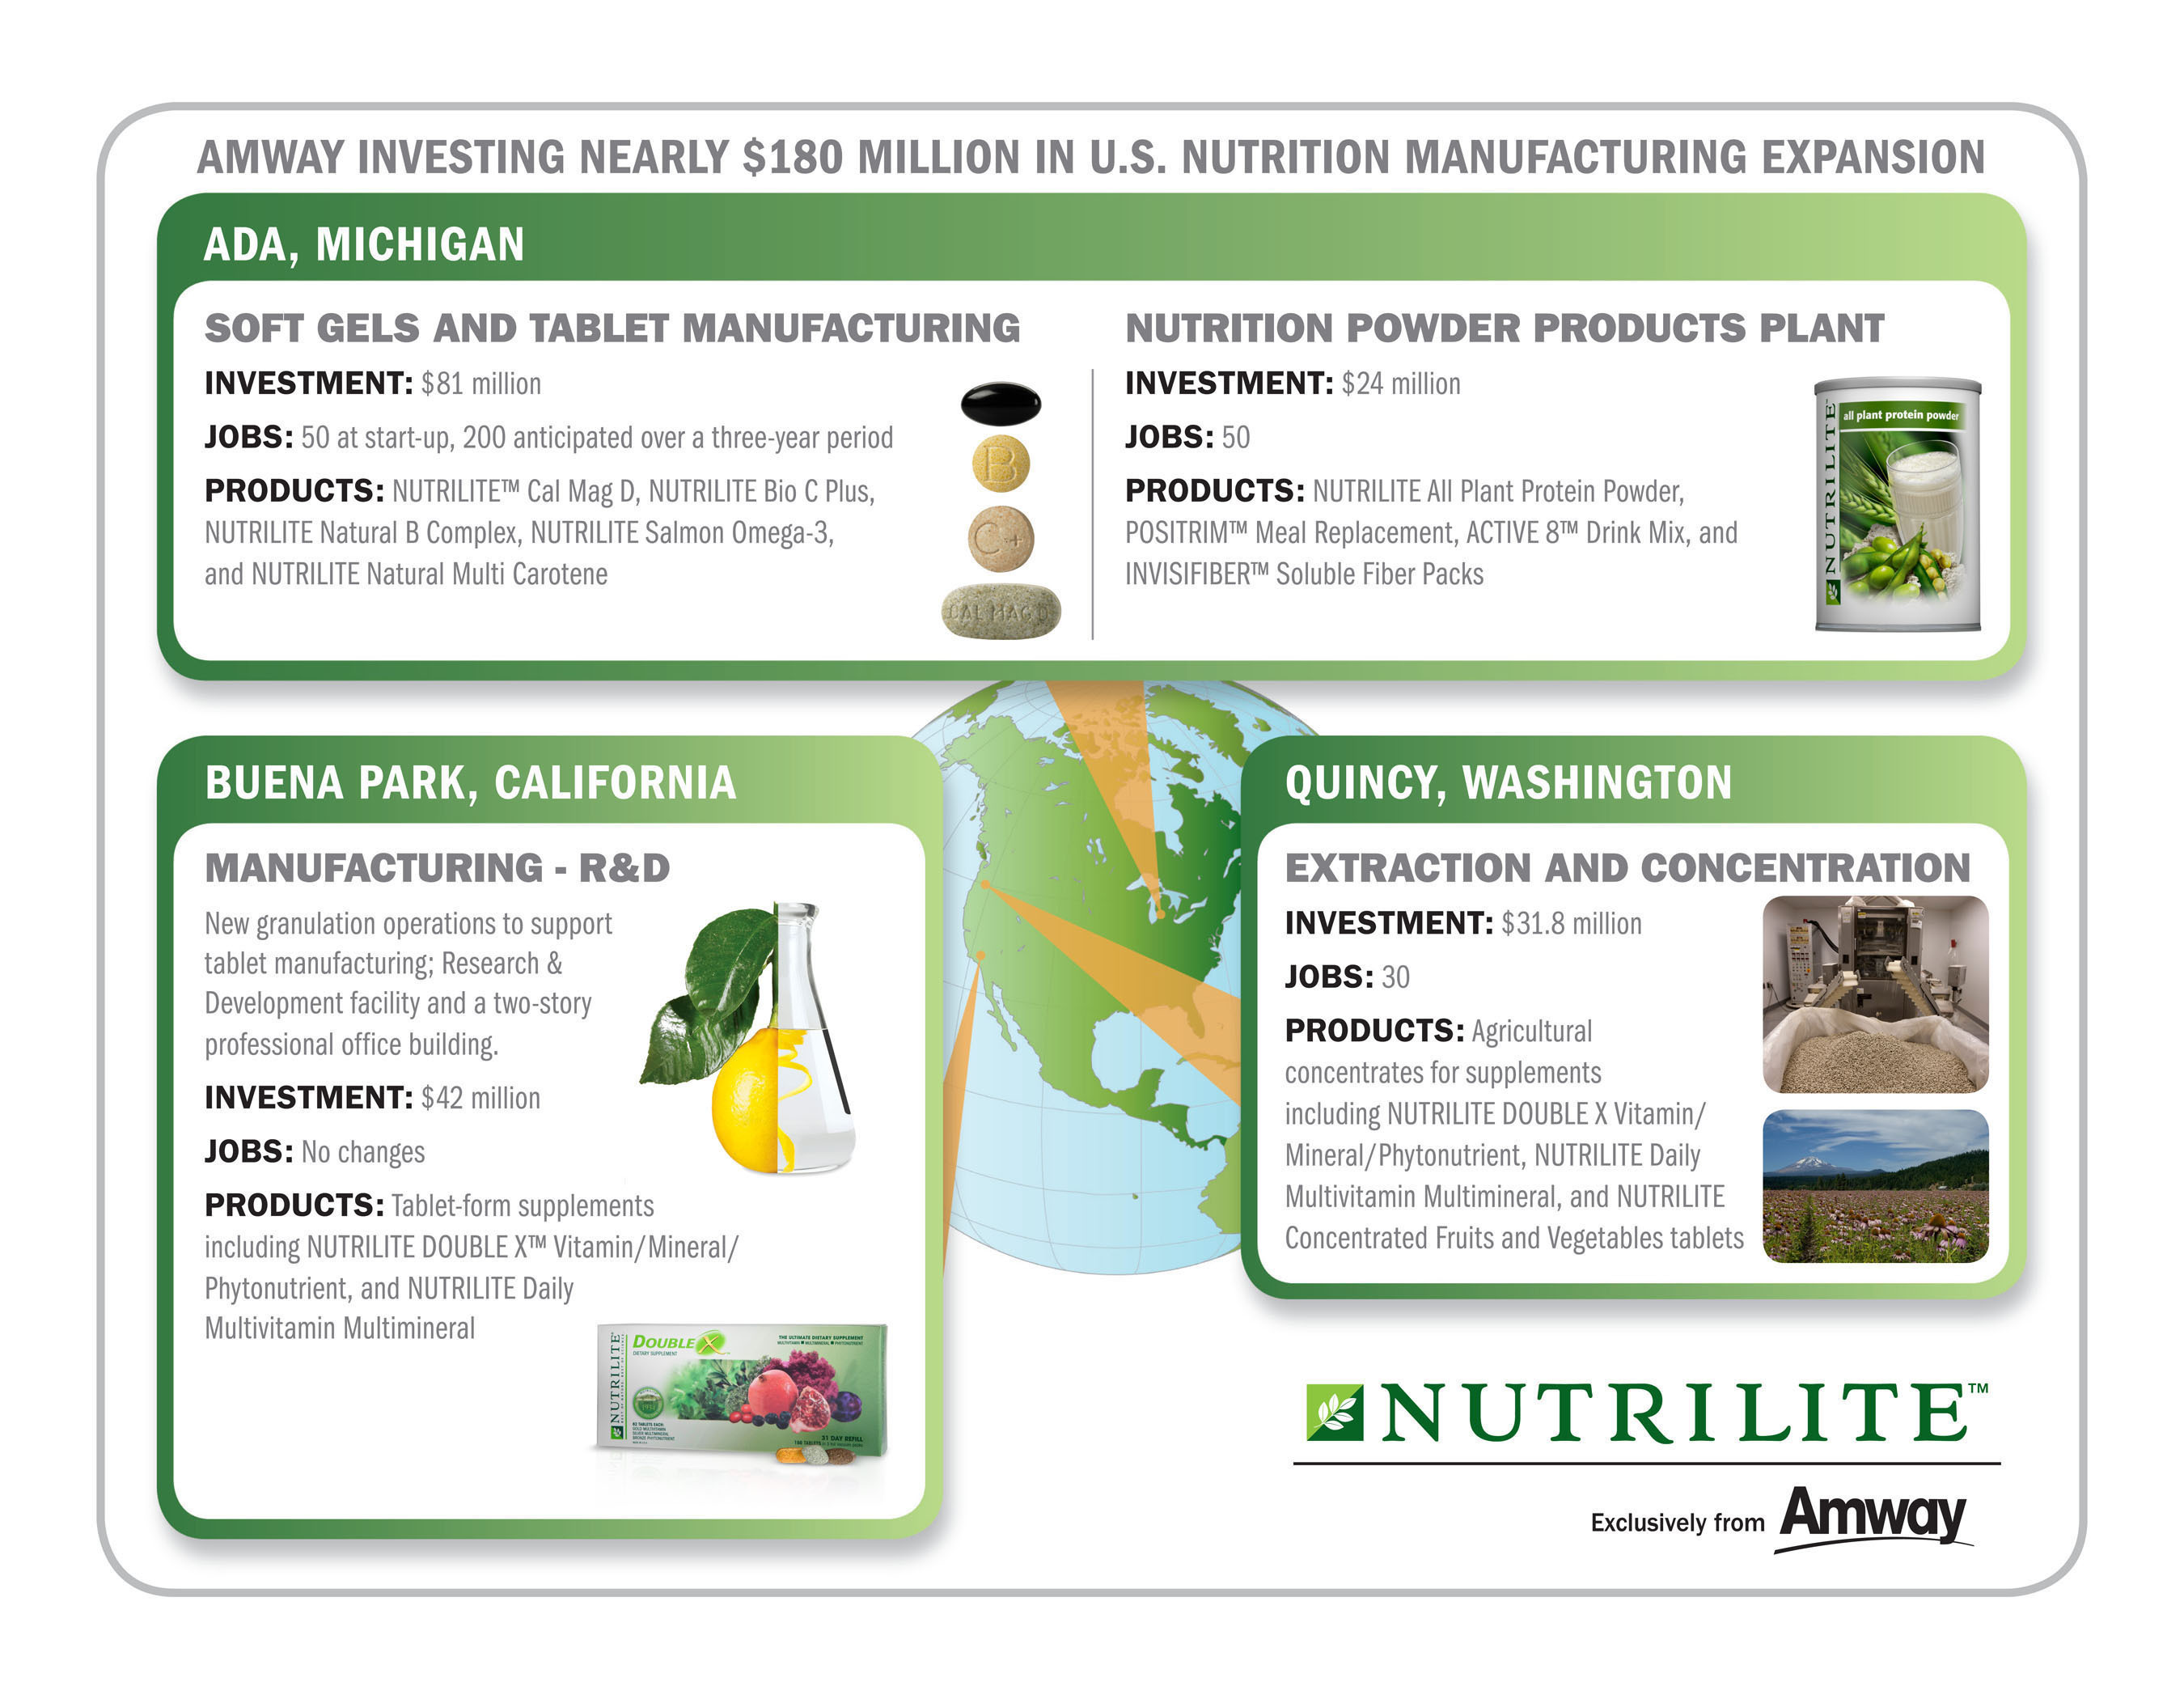 Amway investing nearly $180 million in U.S. manufacturing expansion to meet global demand for